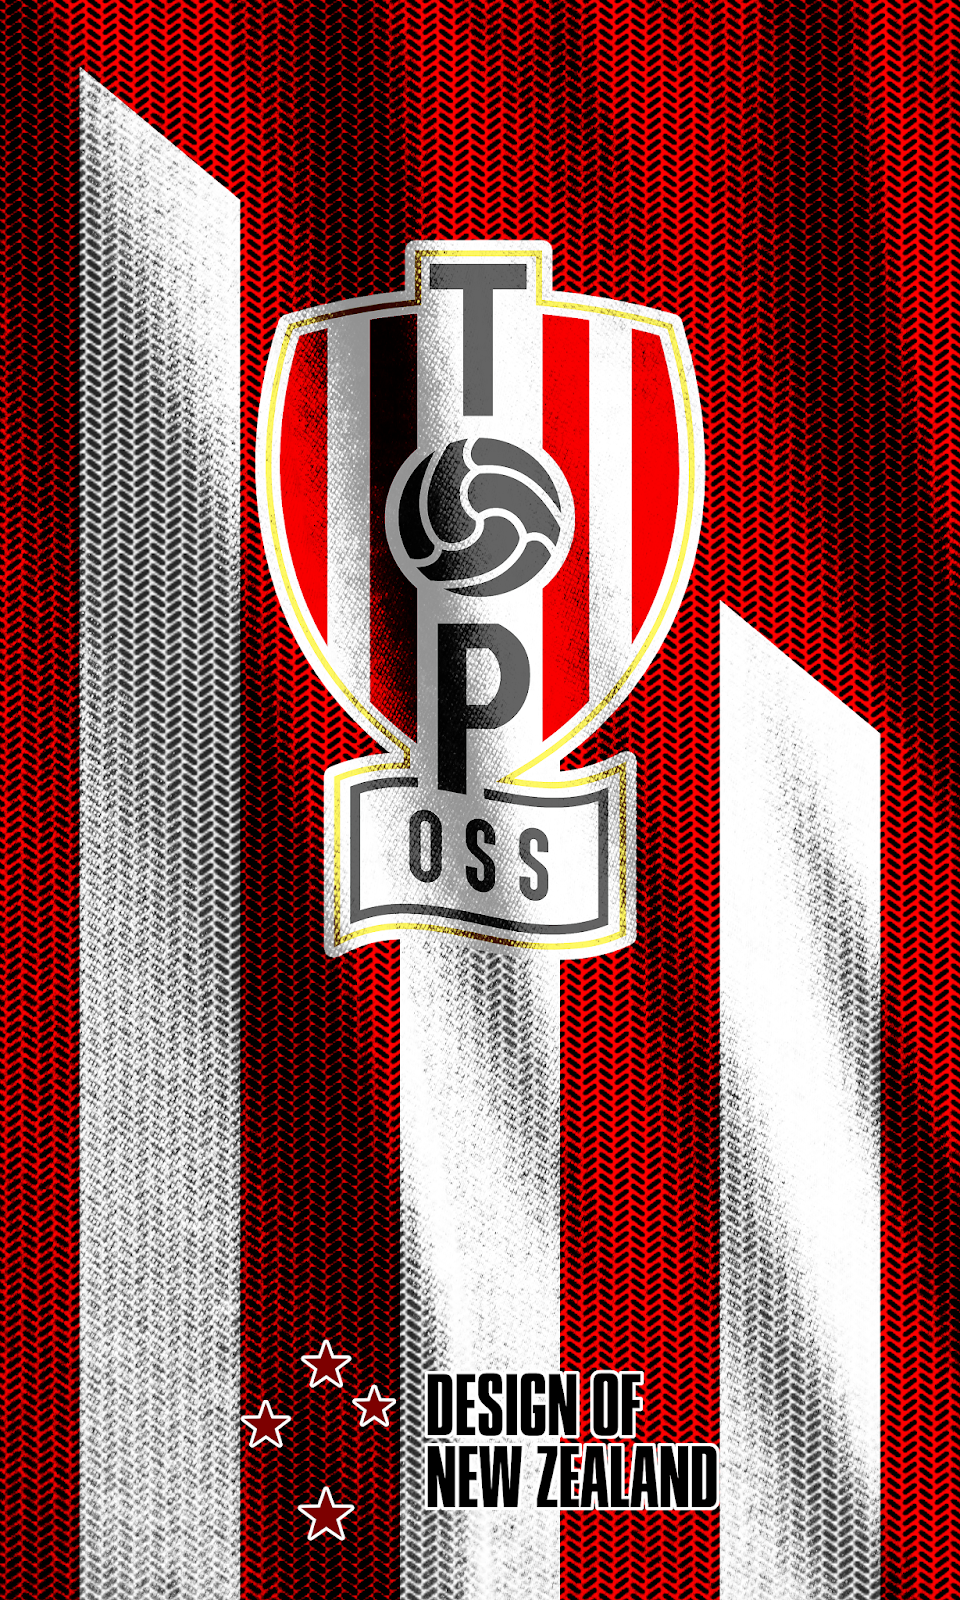 TOP Oss wallpaper